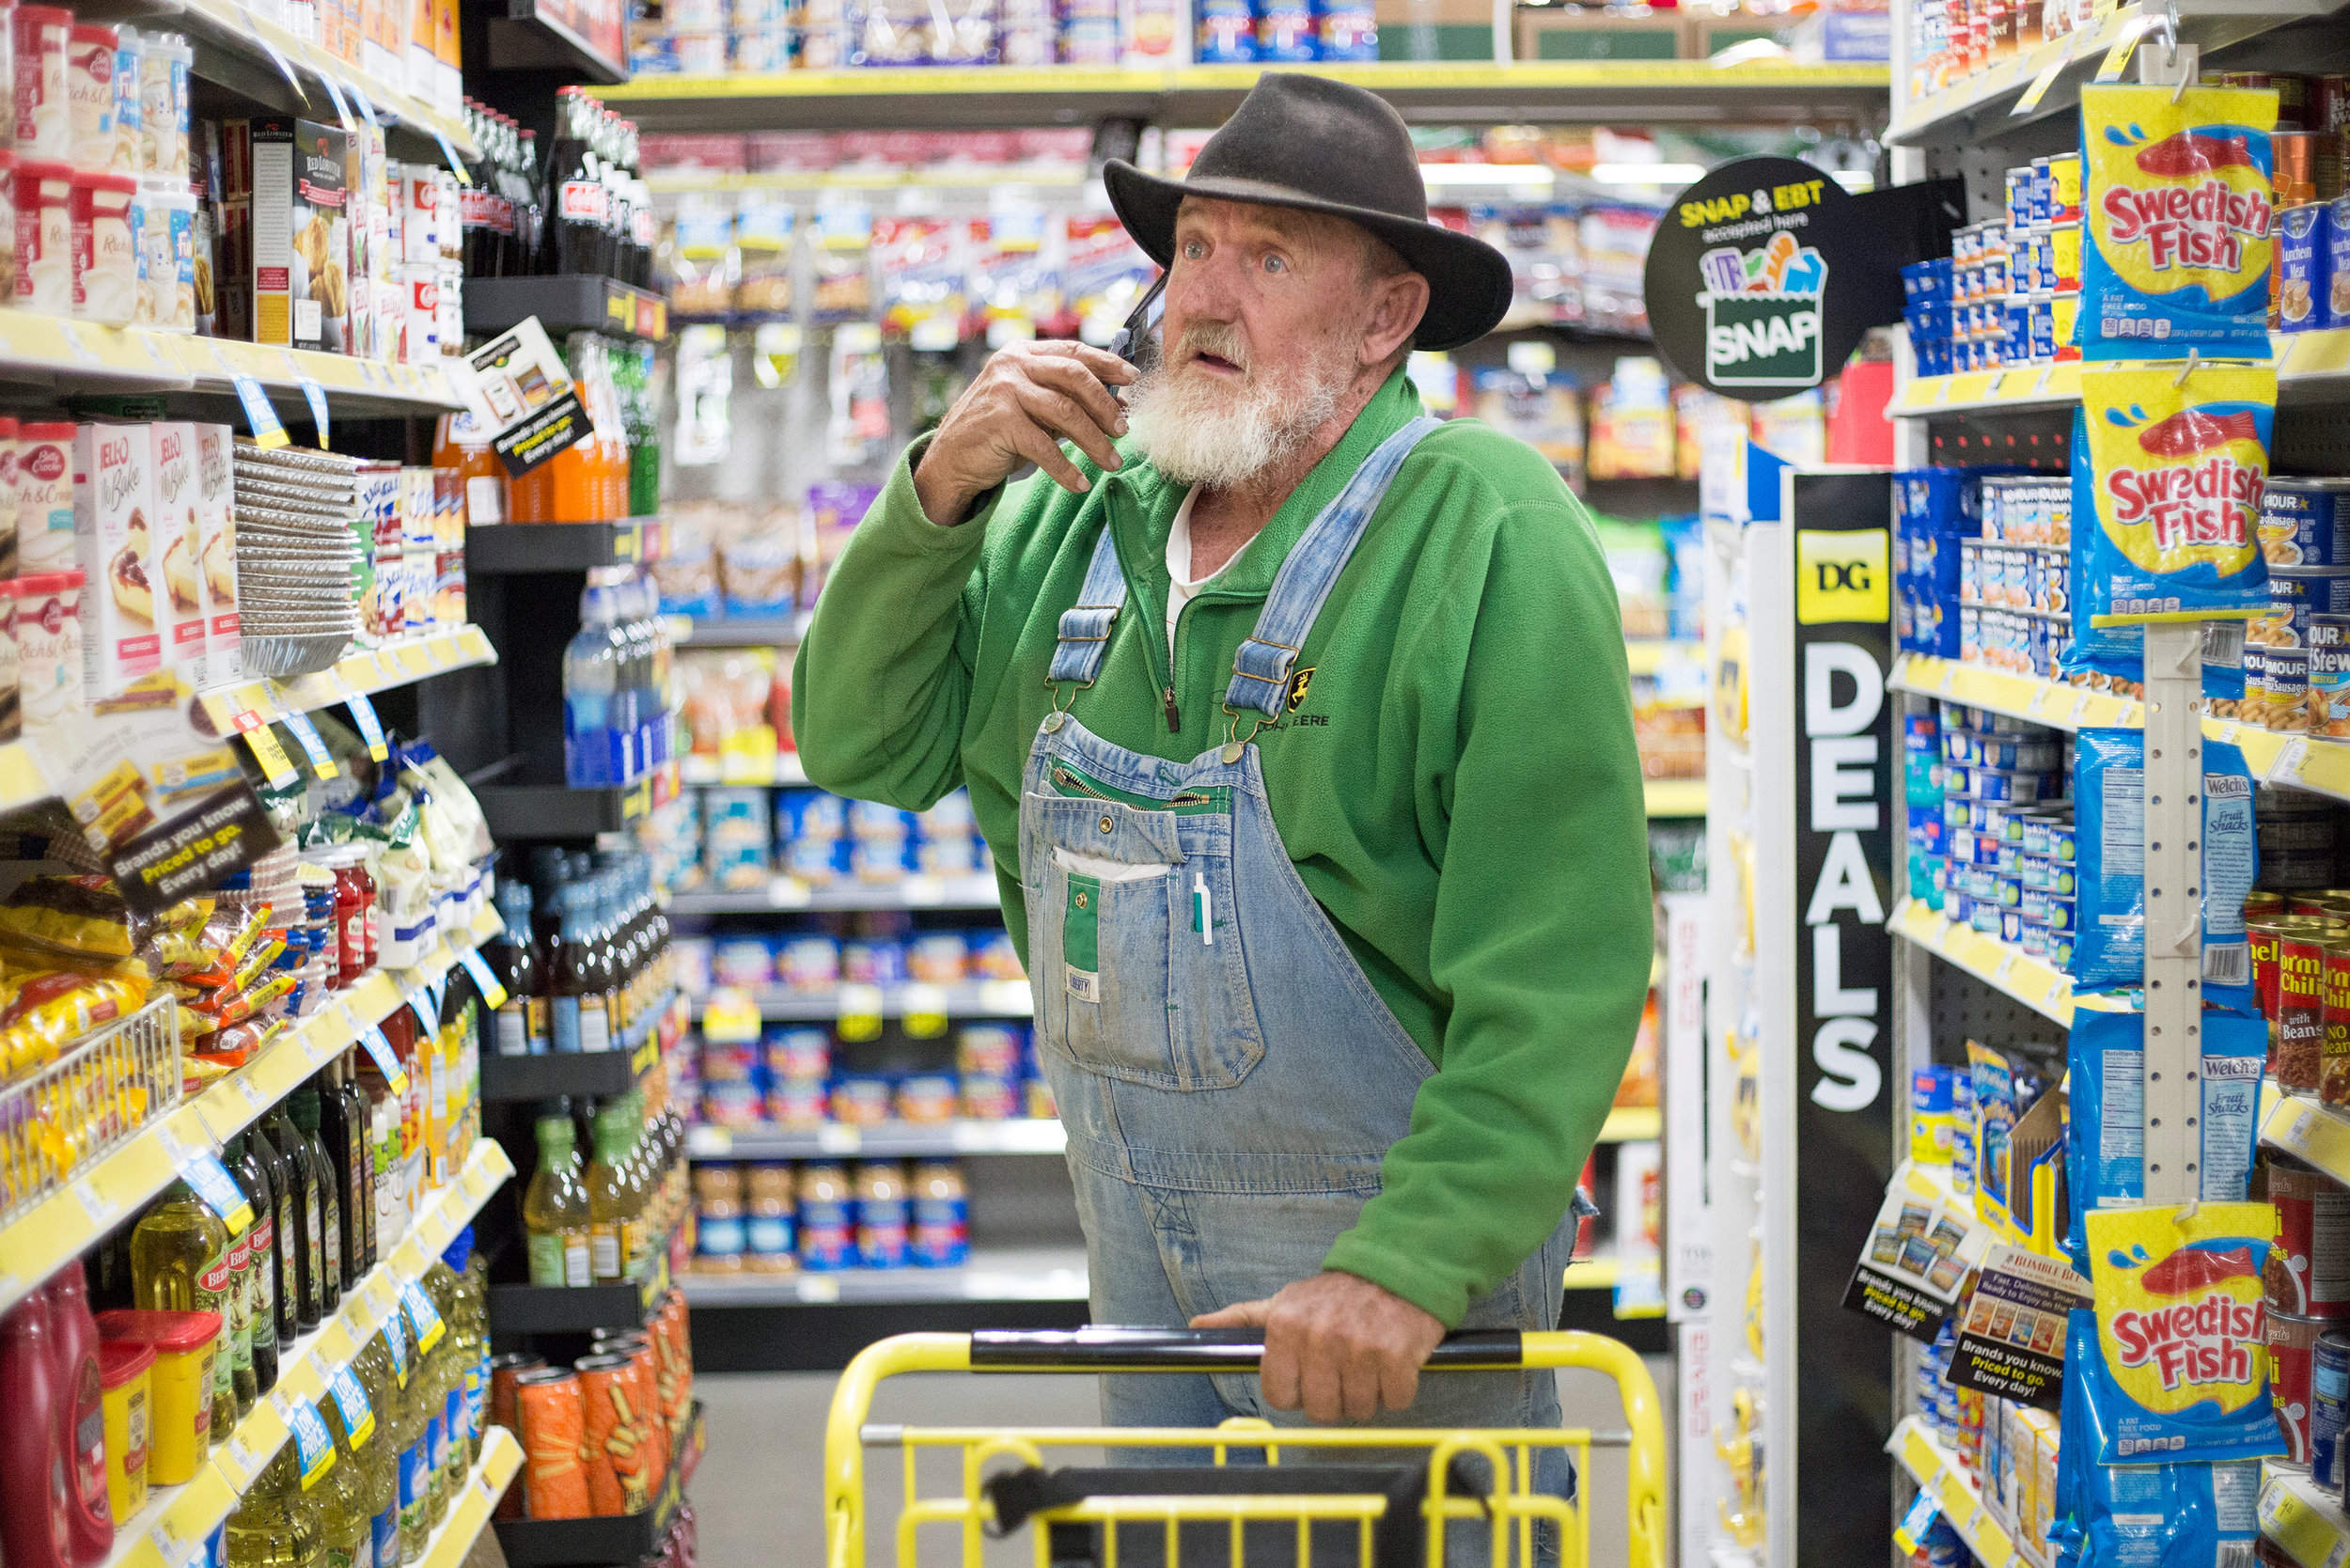 George Beaty of Evensville, Tenn. scans the aisles for cream of chicken soup for his neighbor at Dollar General in Evensville, Tenn. Thursday, Nov. 16 2017. Beaty, a retired welder and plumber, said he usually stops by the store several times a week to pick up whatever he needs.